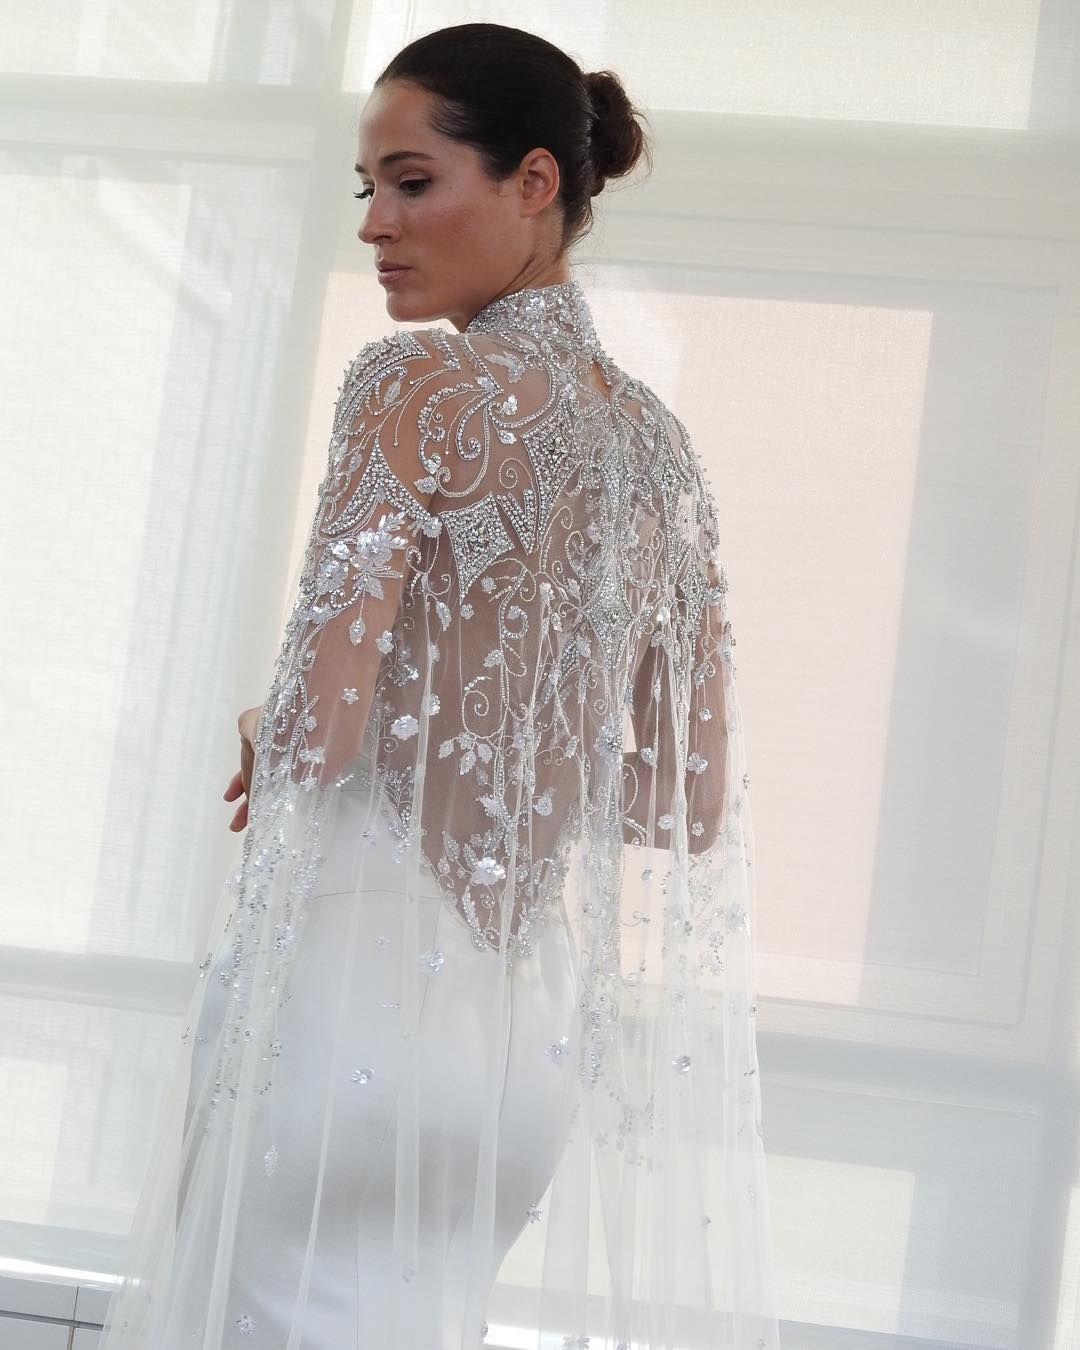 All the biggest wedding dress trends for u sleeves capes